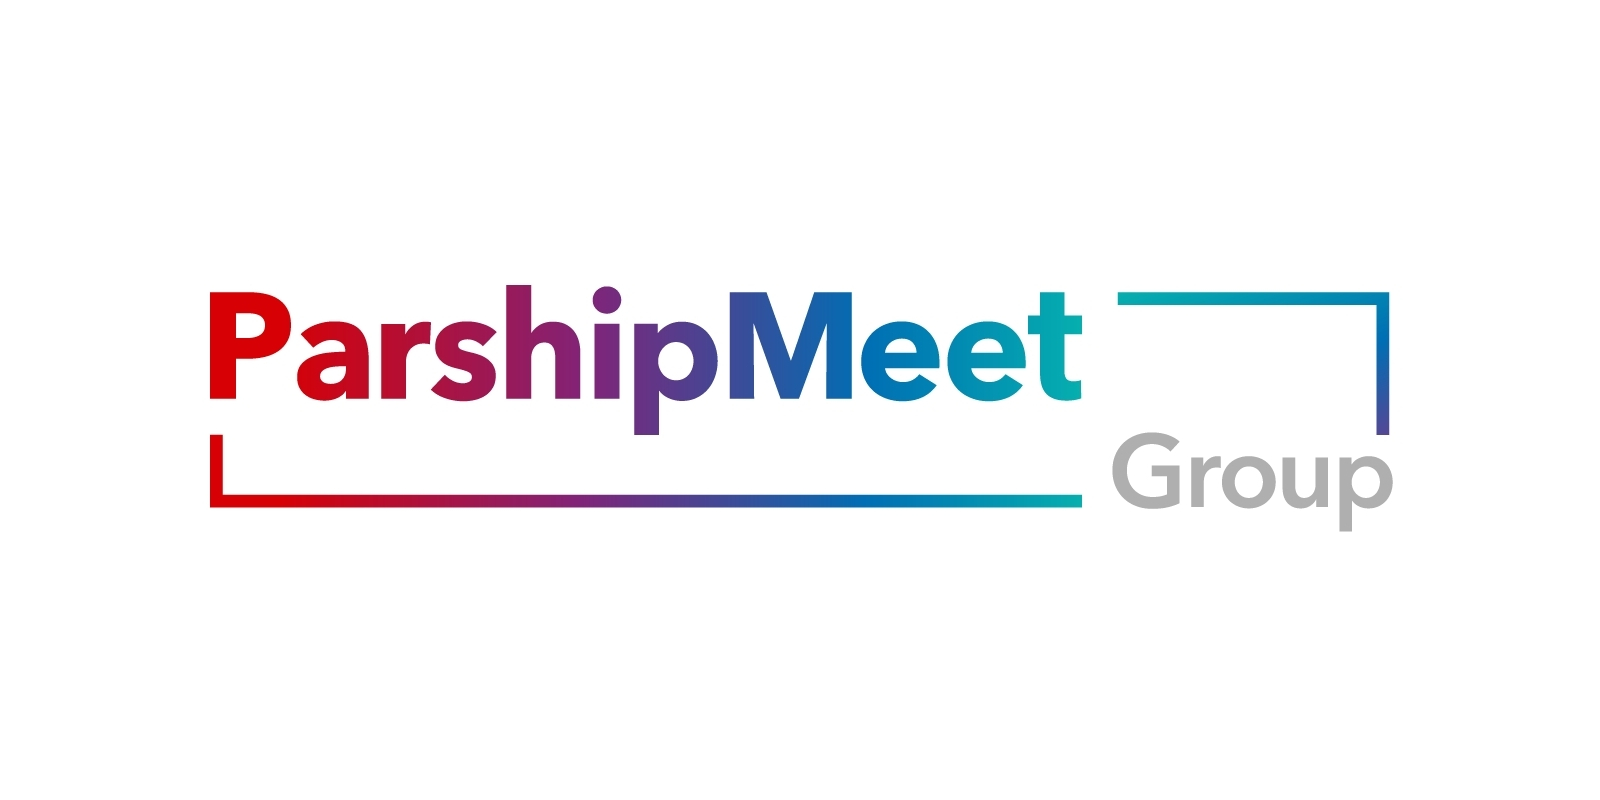 ParshipMeet Group Reportedly Begins Work on 2022 IPO